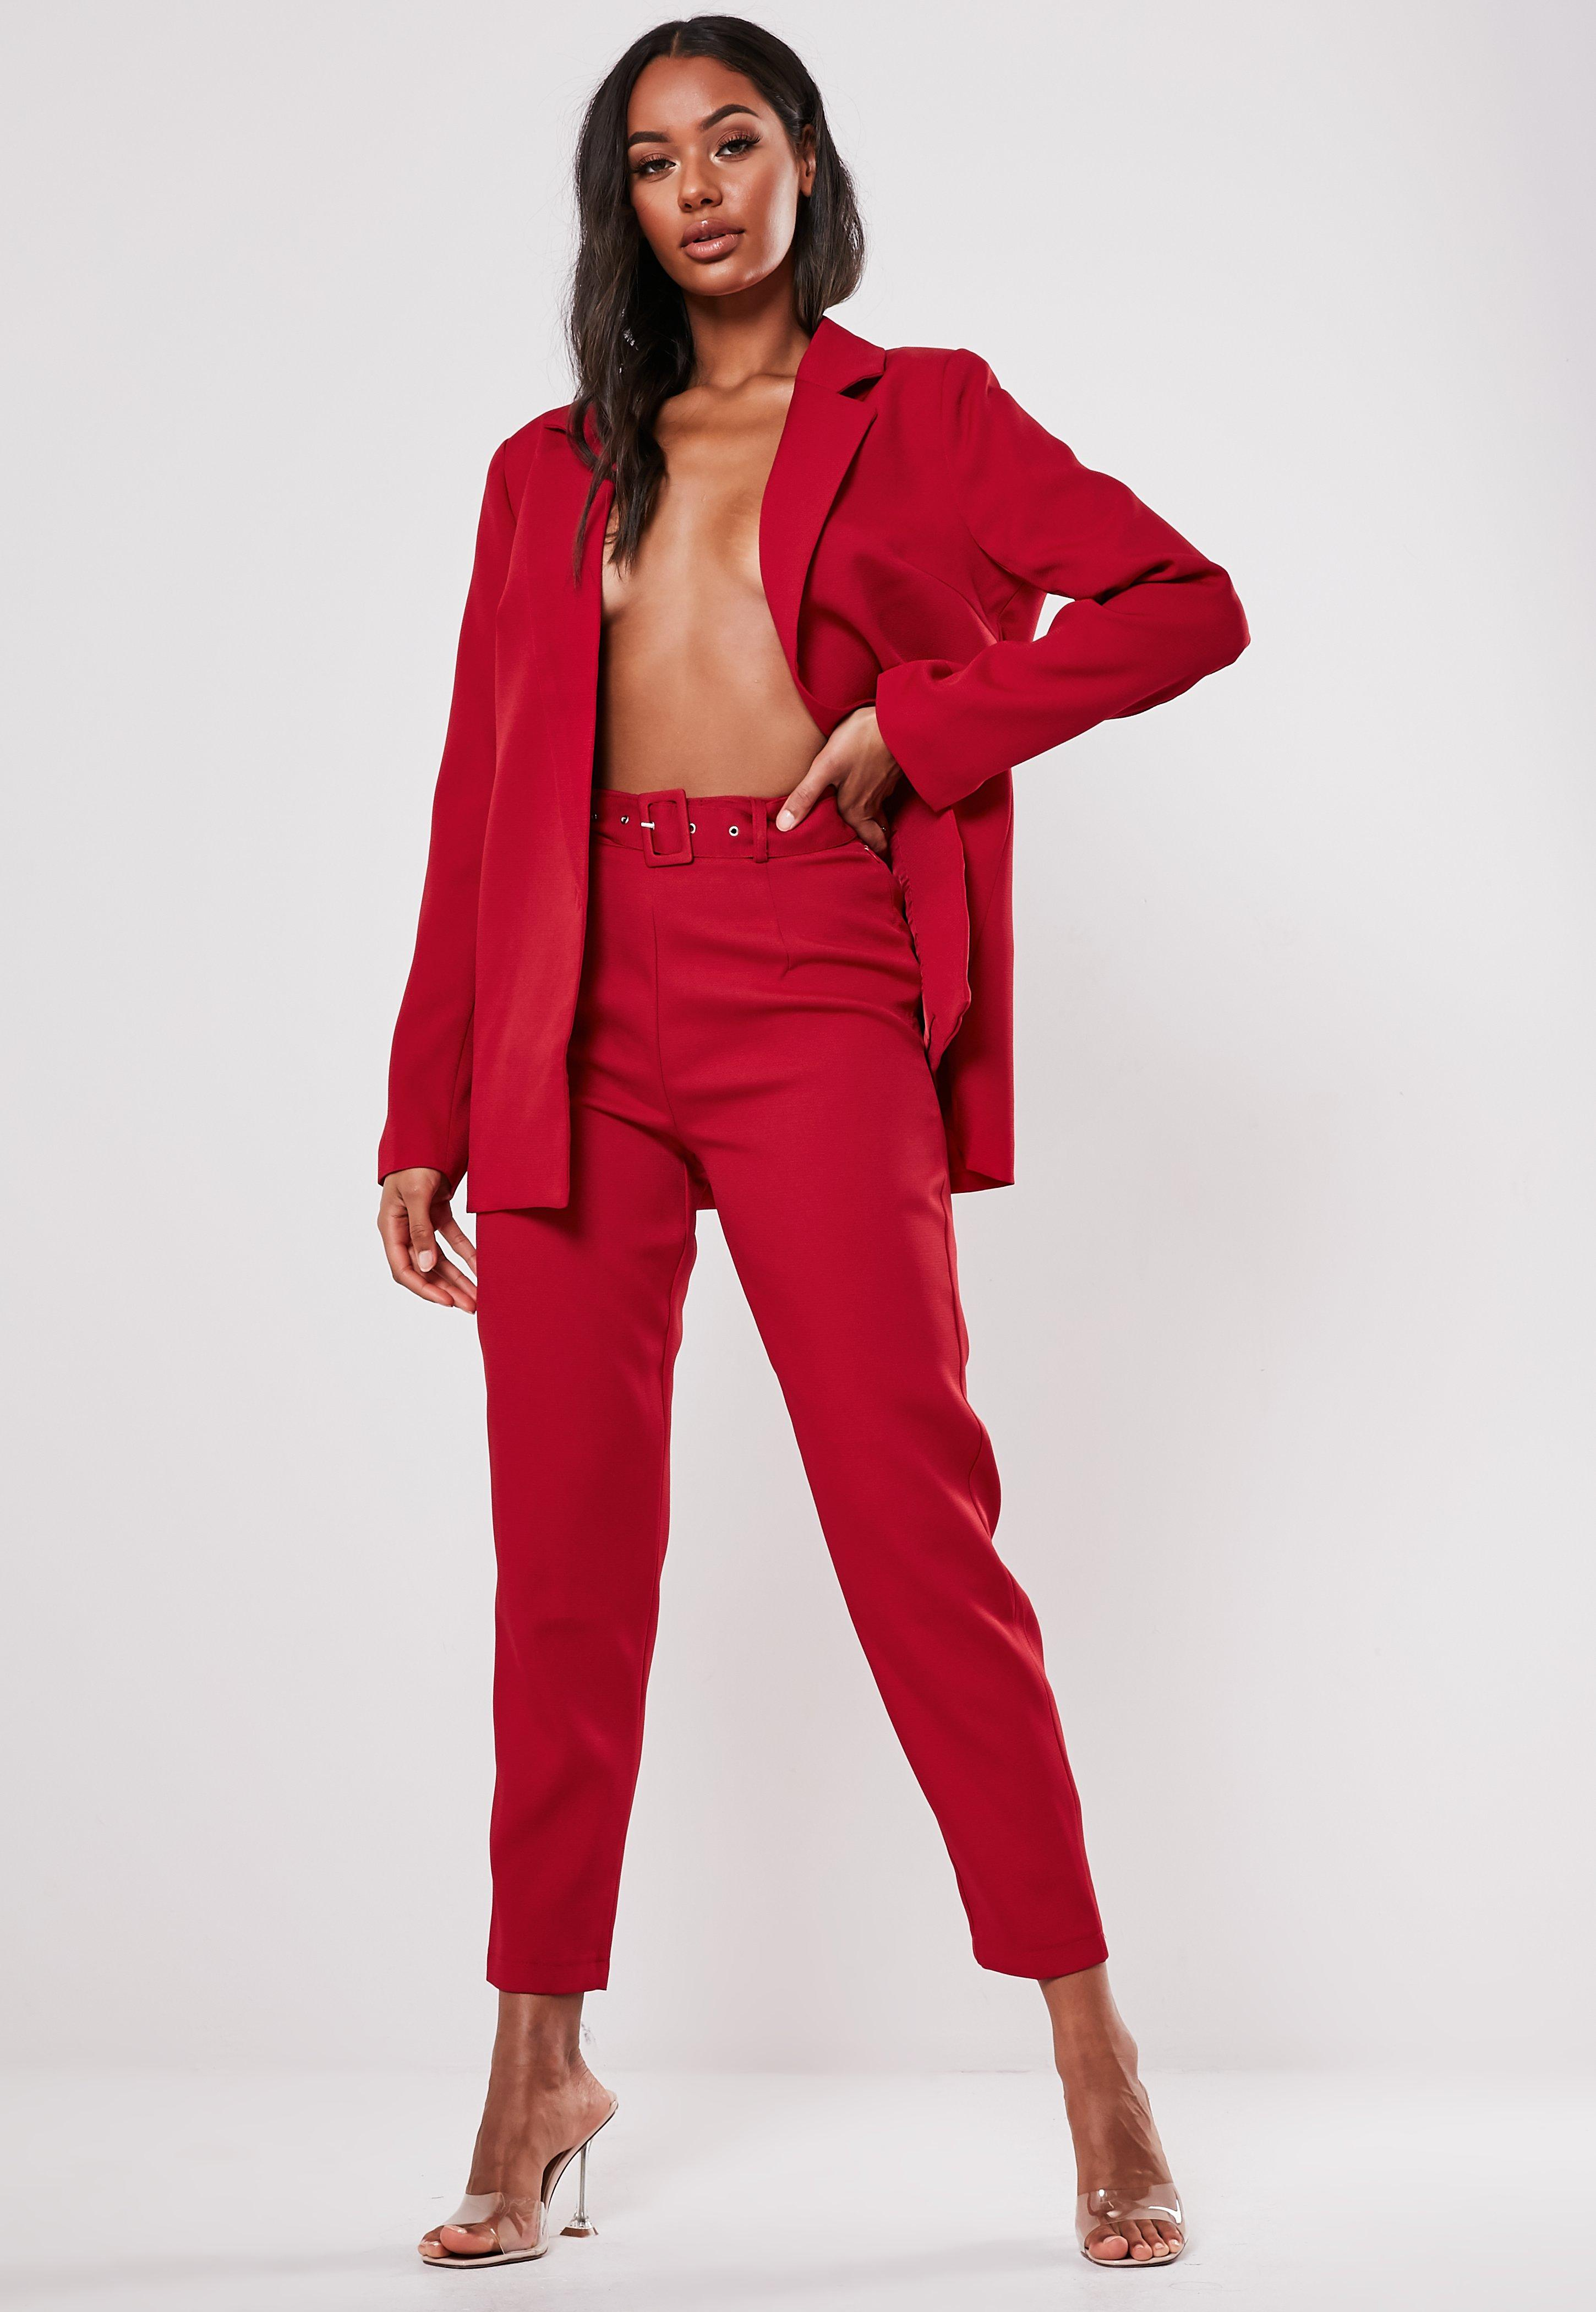 b637d02353 Coordinates, Womens Coords & Two Piece Dresses - Missguided